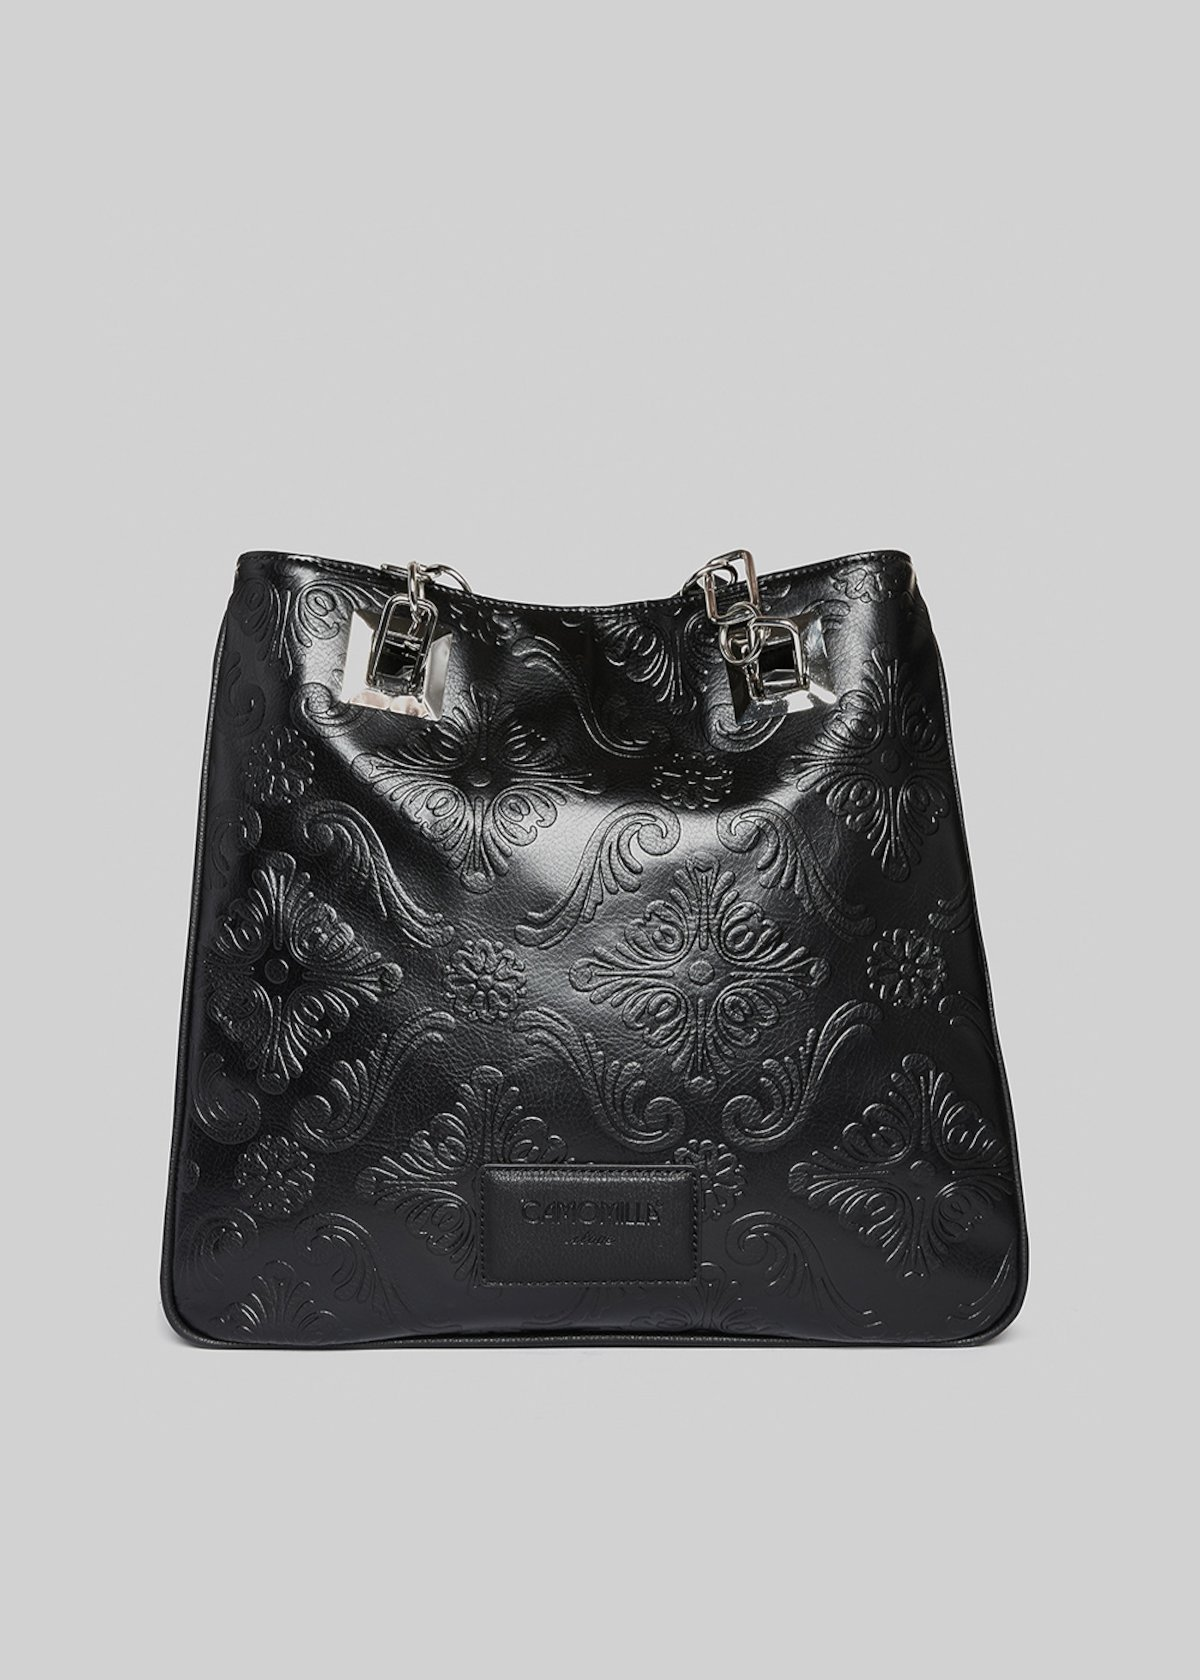 Bede faux leather shopping bag with a floral pattern - Black